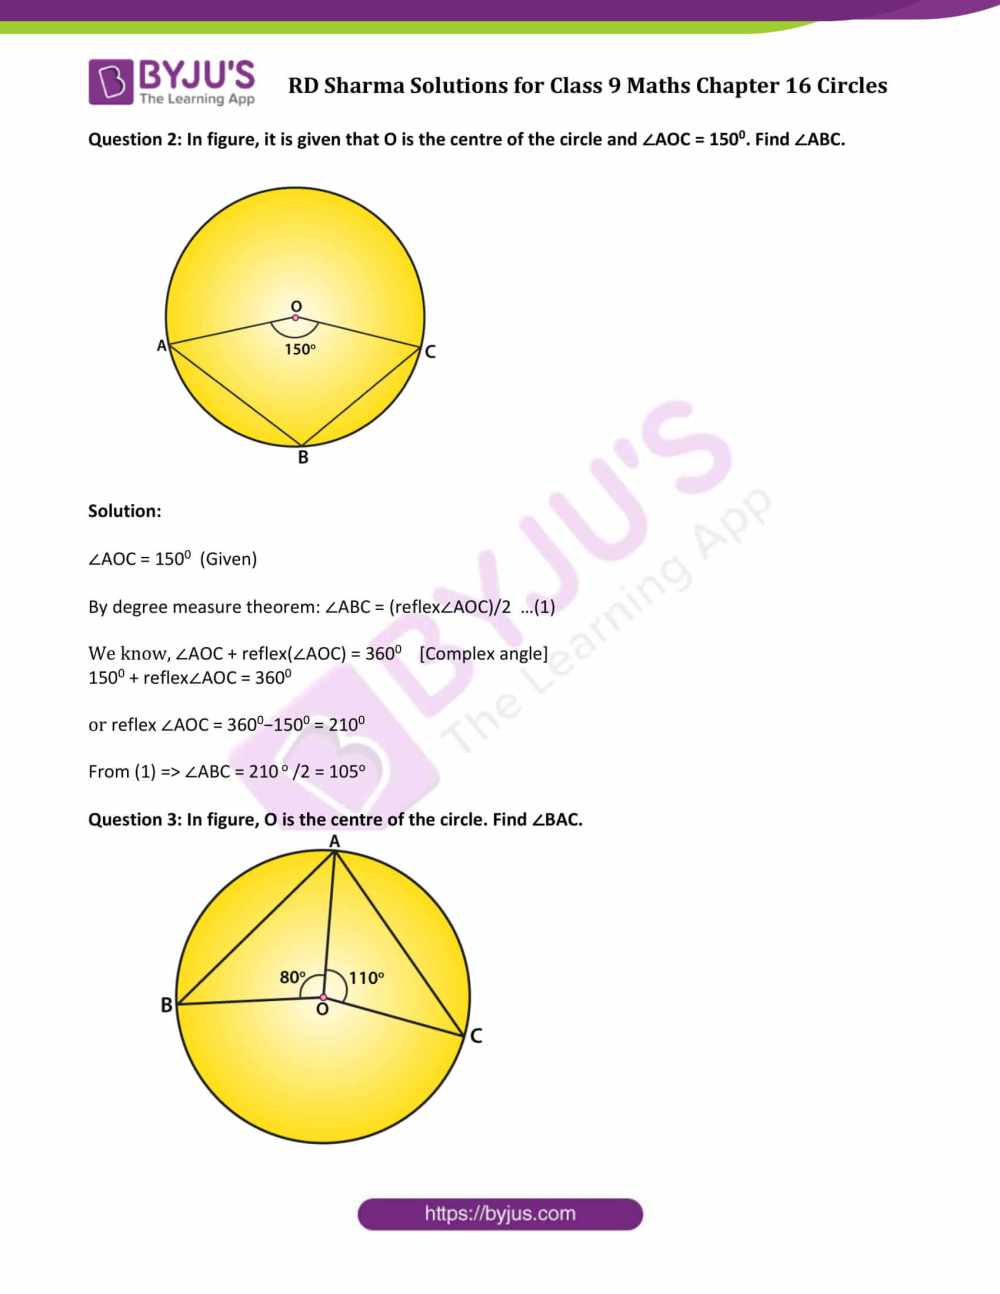 medium resolution of RD Sharma Solutions Exercise 16.4 Chapter 16 Class 9 Circles